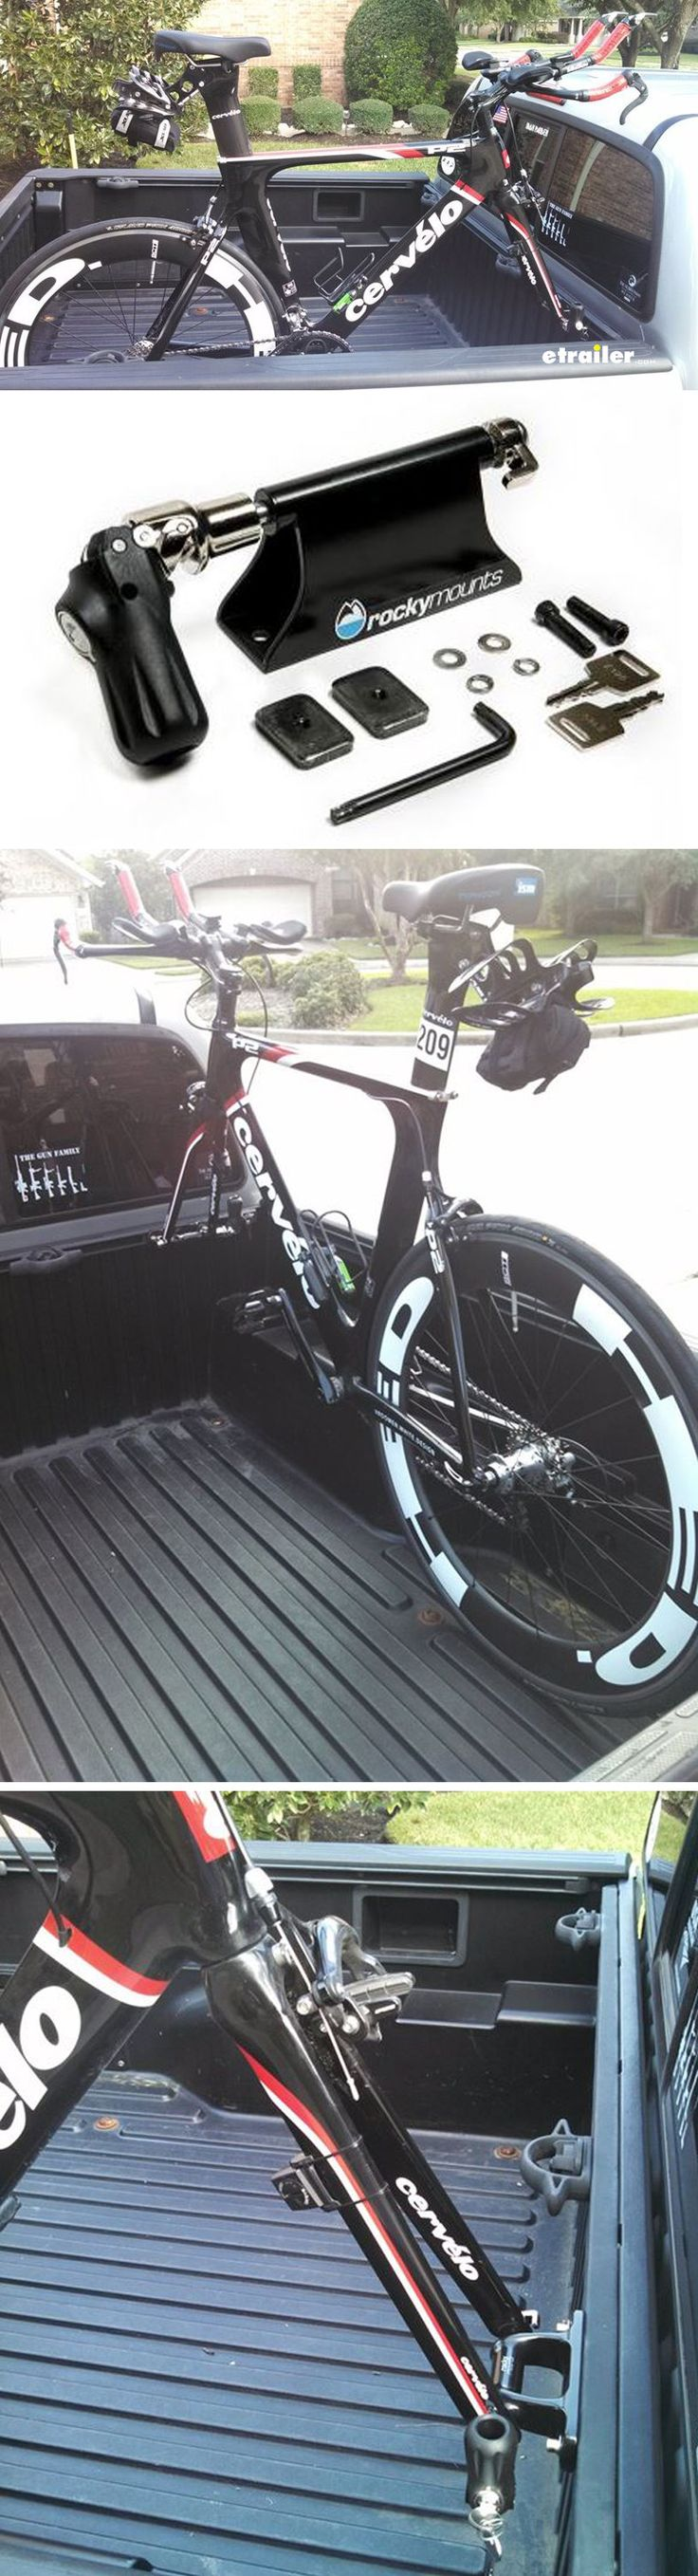 The RockyMounts LoBall bike rack makes it easy to transport a bike in your truck bed. Fits Toyota, Chevrolet, GMC, and Nissan truck's slotted tracks for tie-downs.